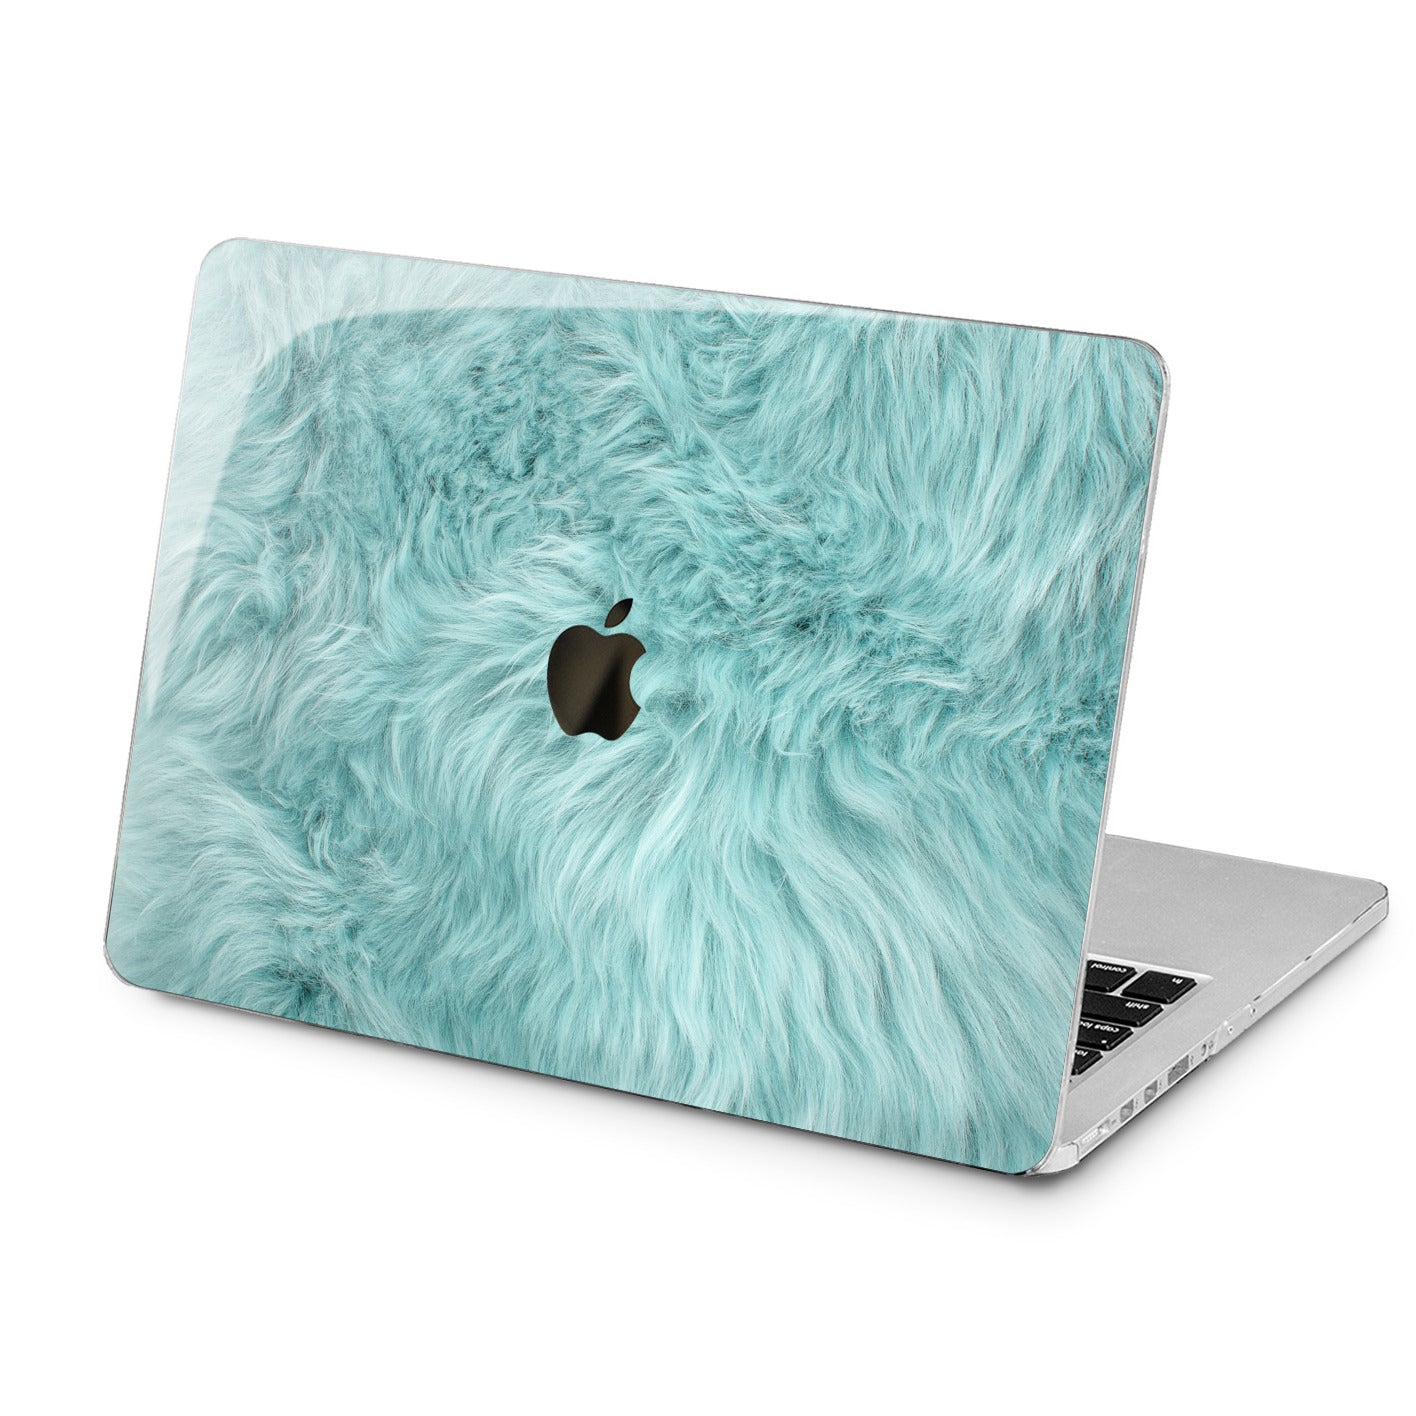 Lex Altern Lex Altern Blue Fur Case for your Laptop Apple Macbook.